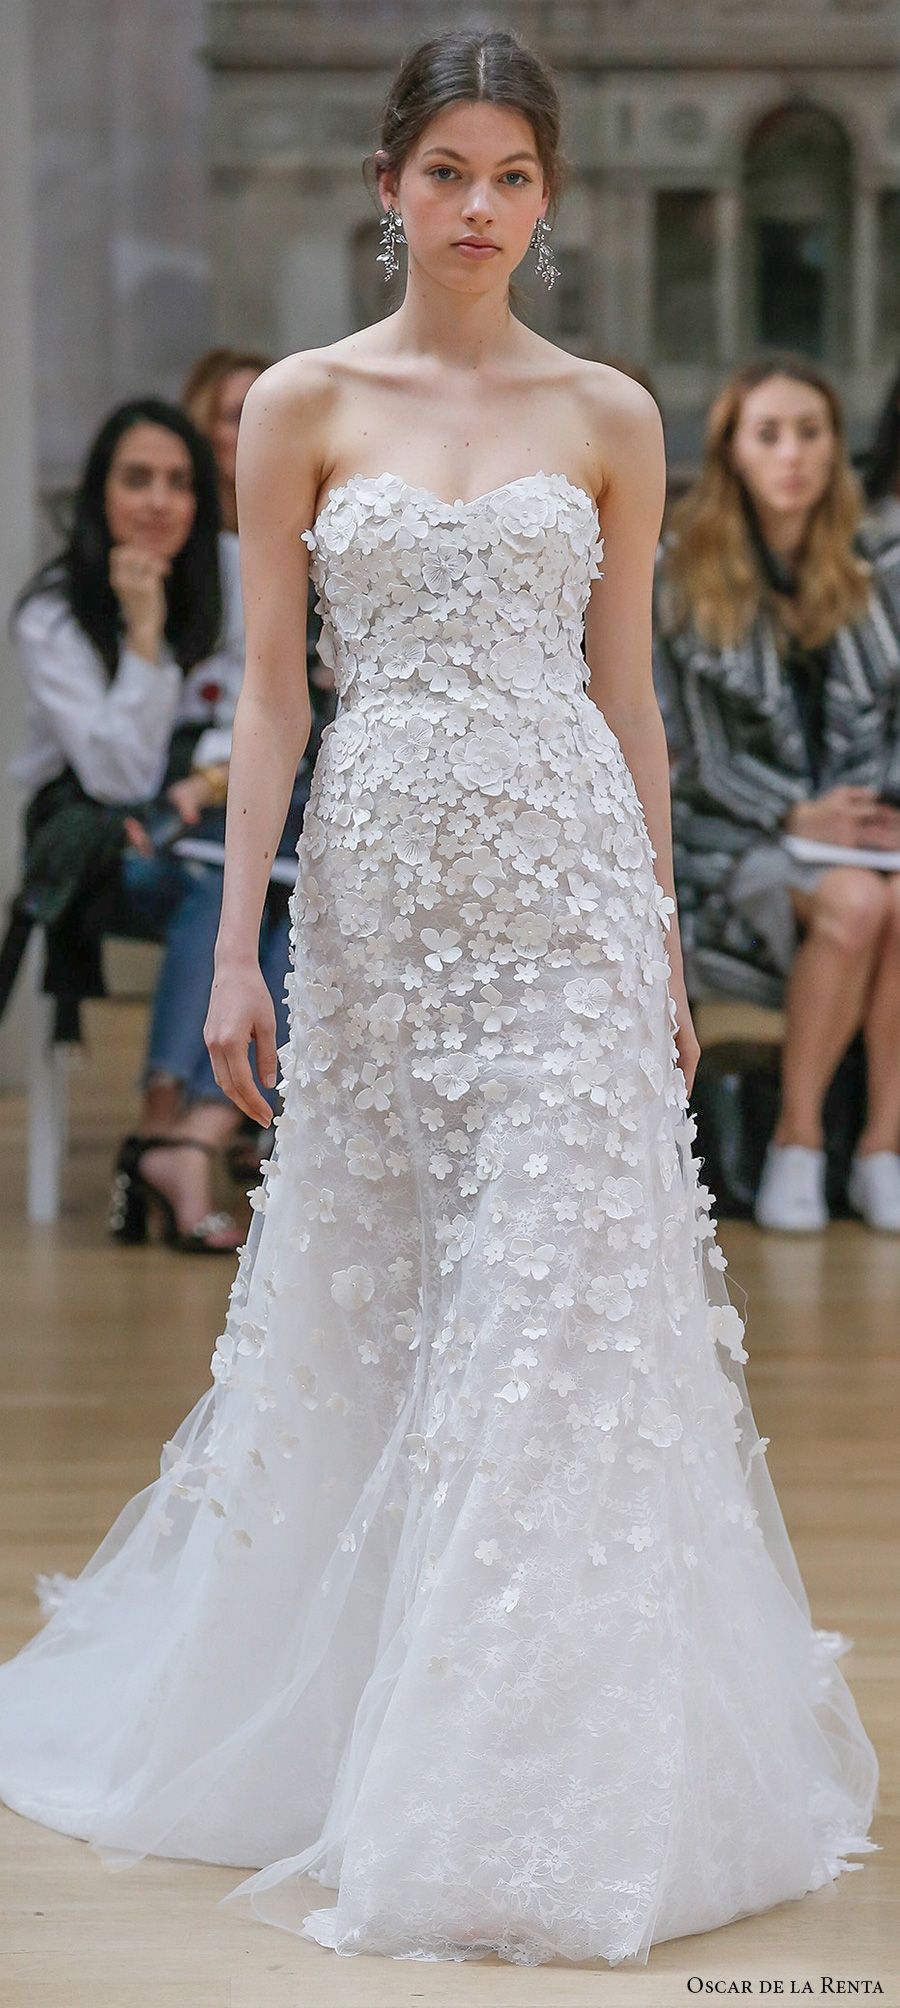 Oscar de la renta spring 2018 wedding dresses new york bridal oscar de la renta spring 2018 bridal strapless sweetheart neckline heavily embellished bodice romantic a line wedding dress chapel train 15 mv oscar de junglespirit Gallery